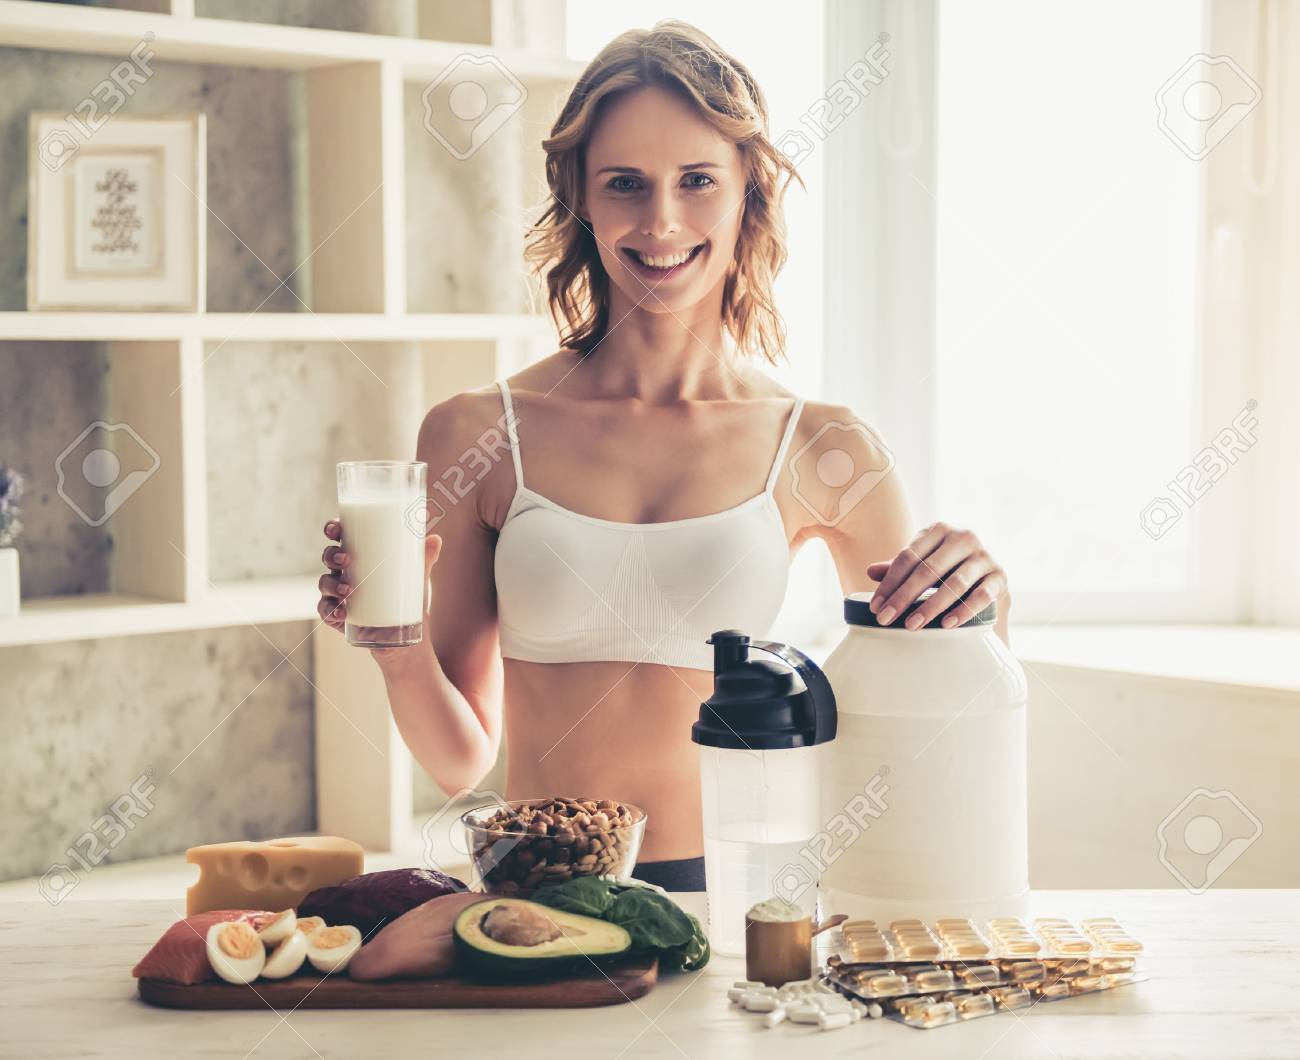 Beautiful young sportswoman is looking at camera and smiling while preparing sport nutrition in kitchen at home - 79149197